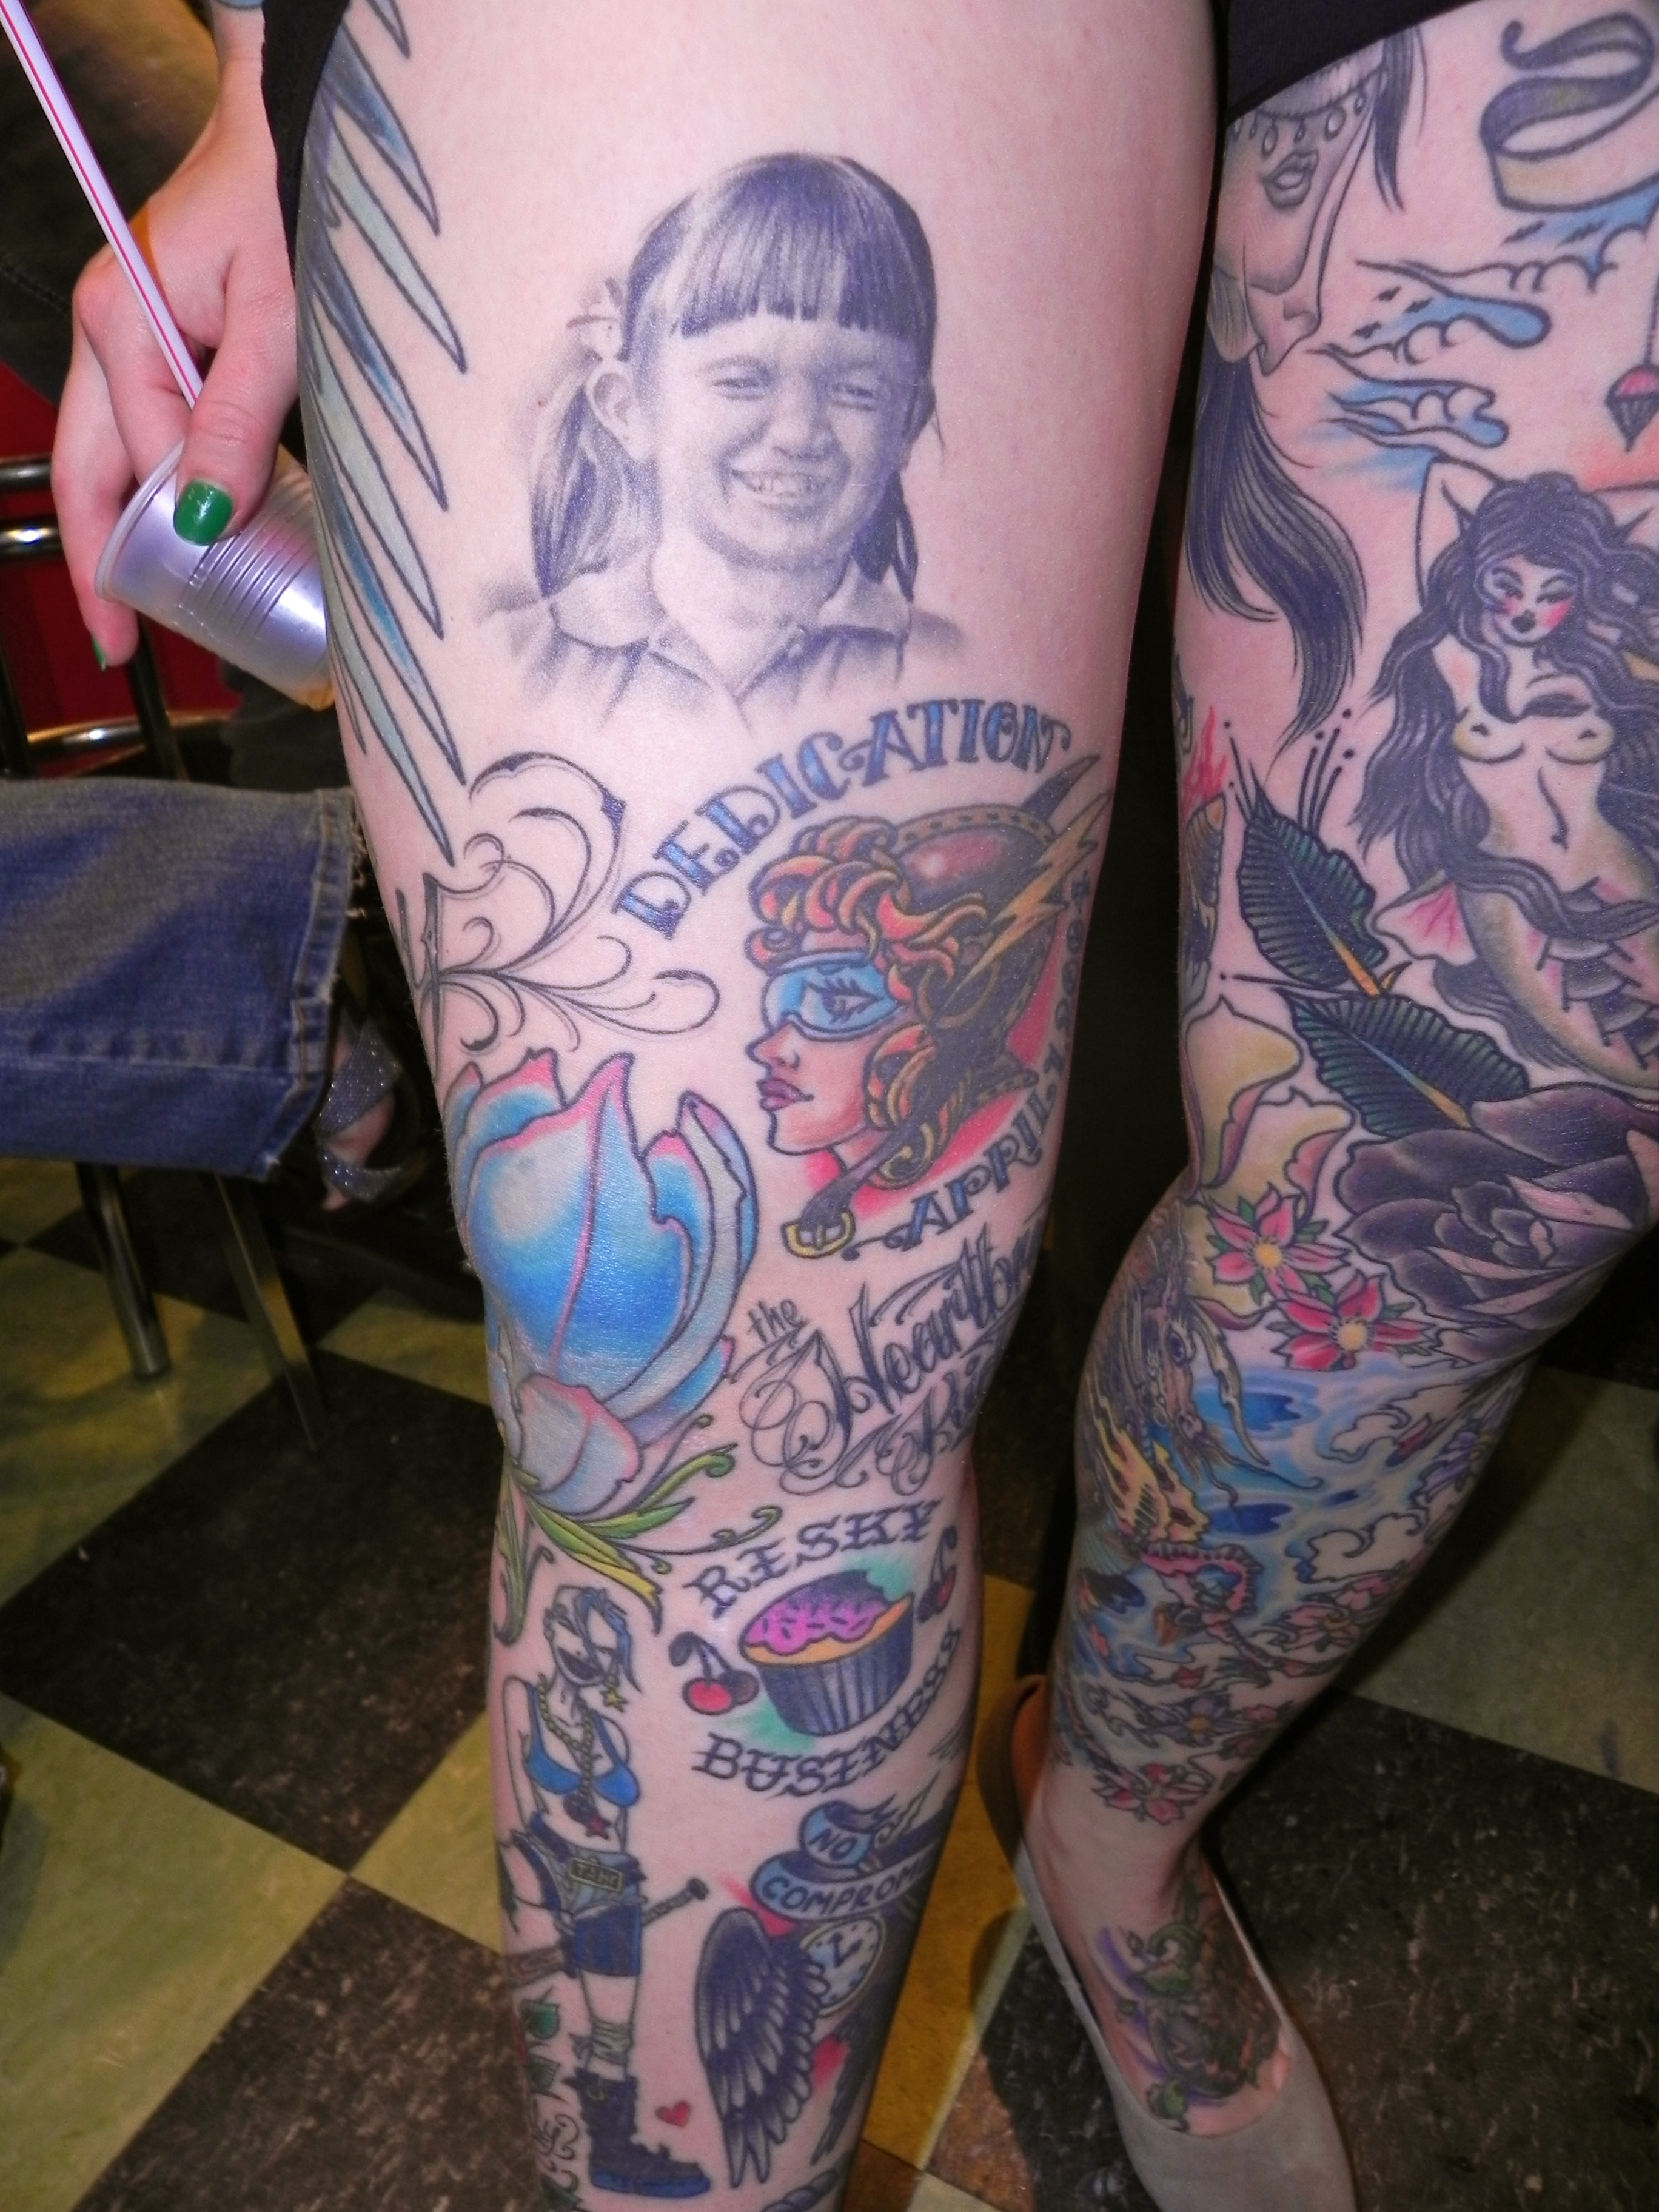 BAD TATTOOS - Page 204 - All or Nothing Tattoo and Art Studio